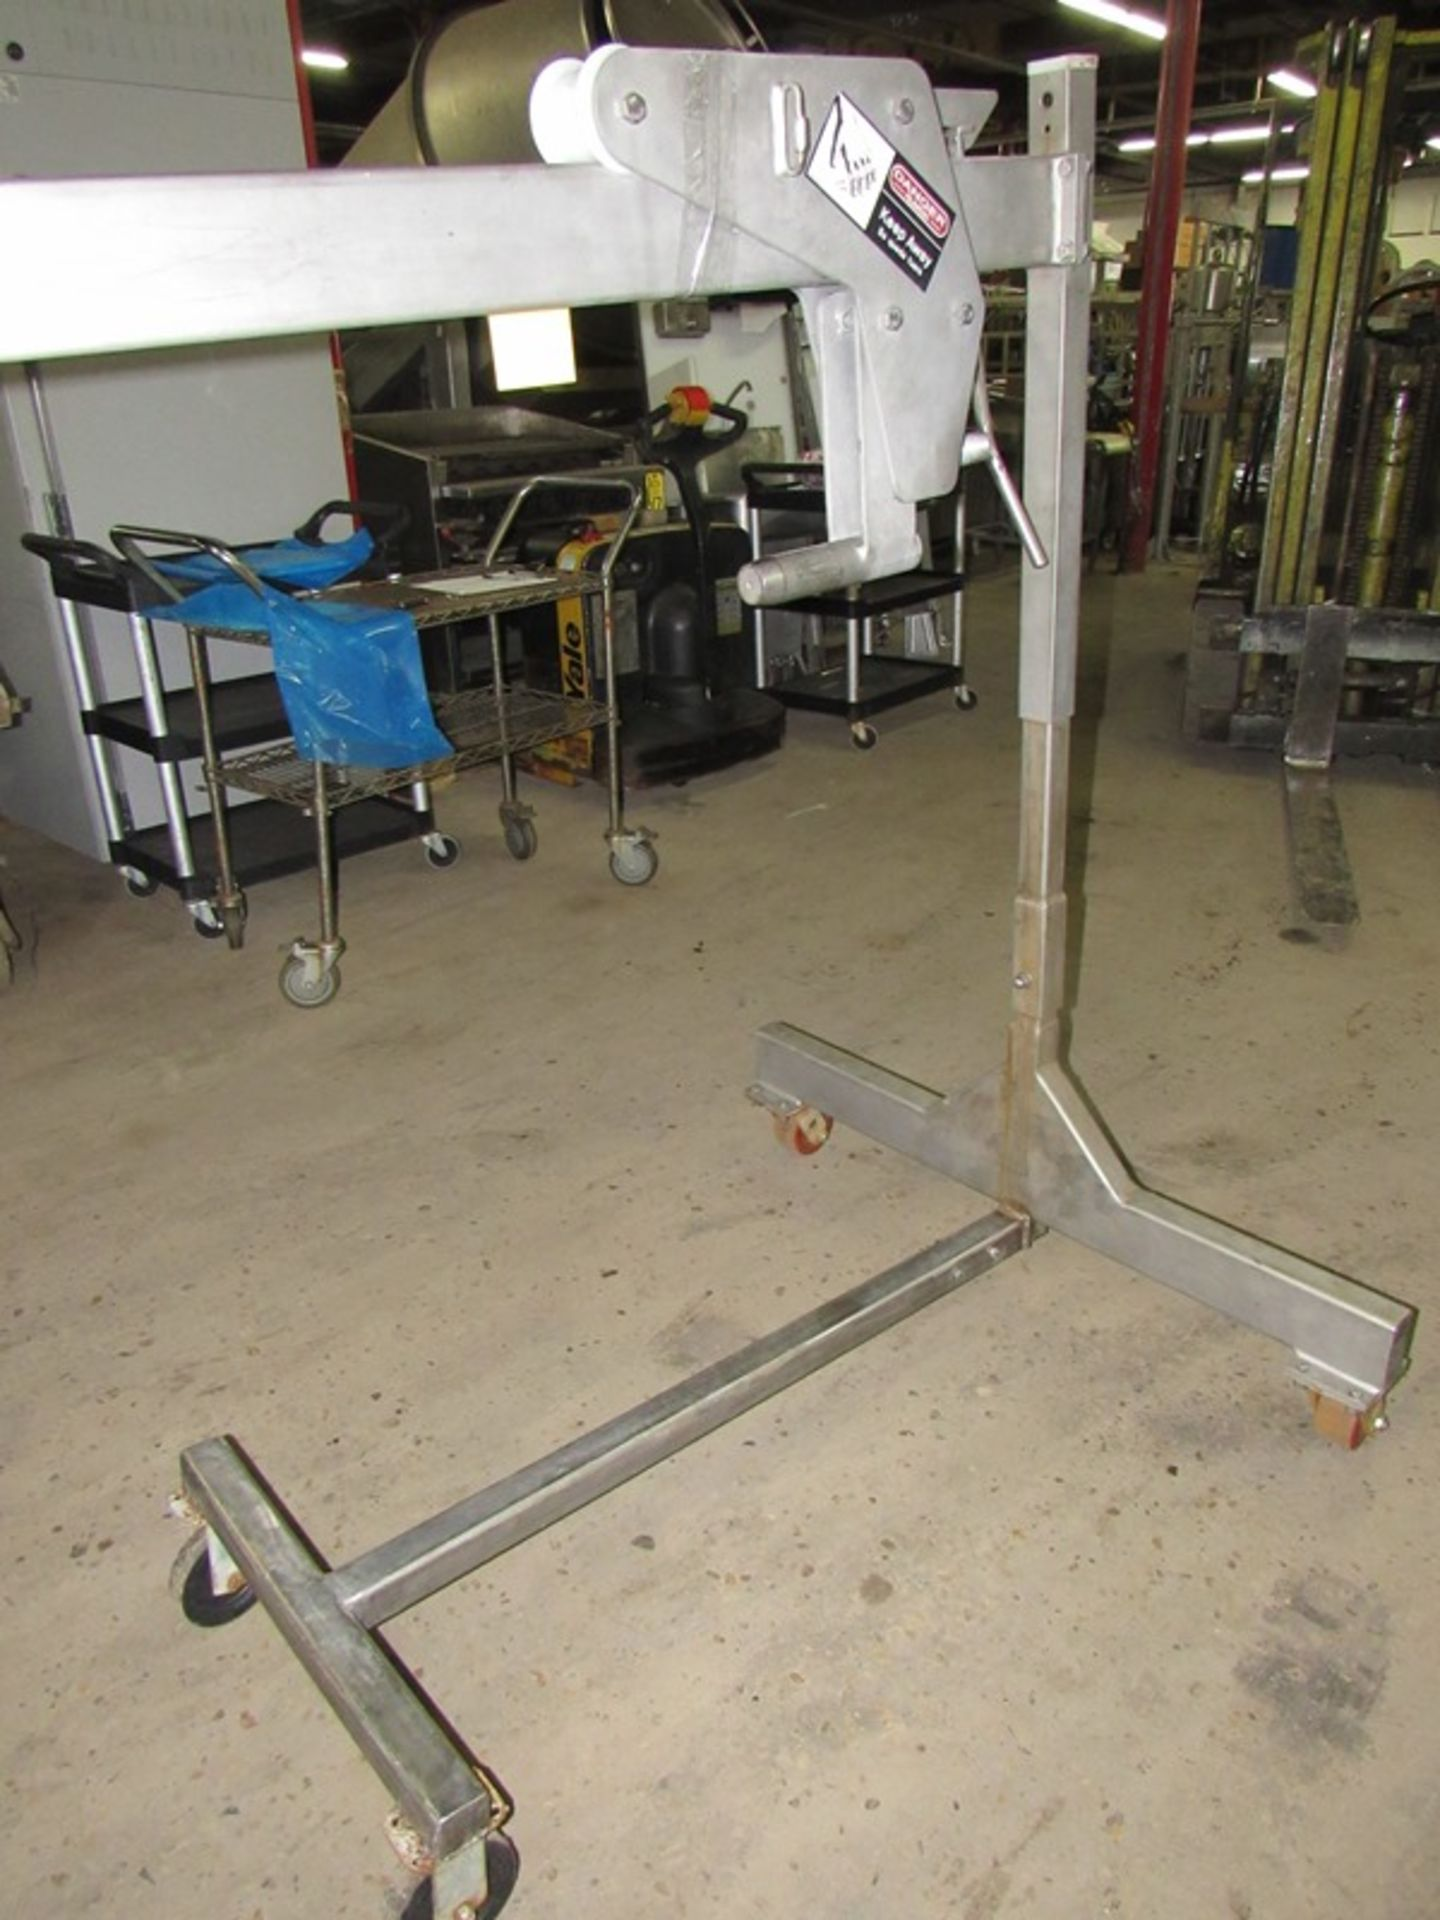 Lot 32 - Stainless Steel Auger Puller, 7' long, on wheels;*** All Funds Must Be Received By Friday, January